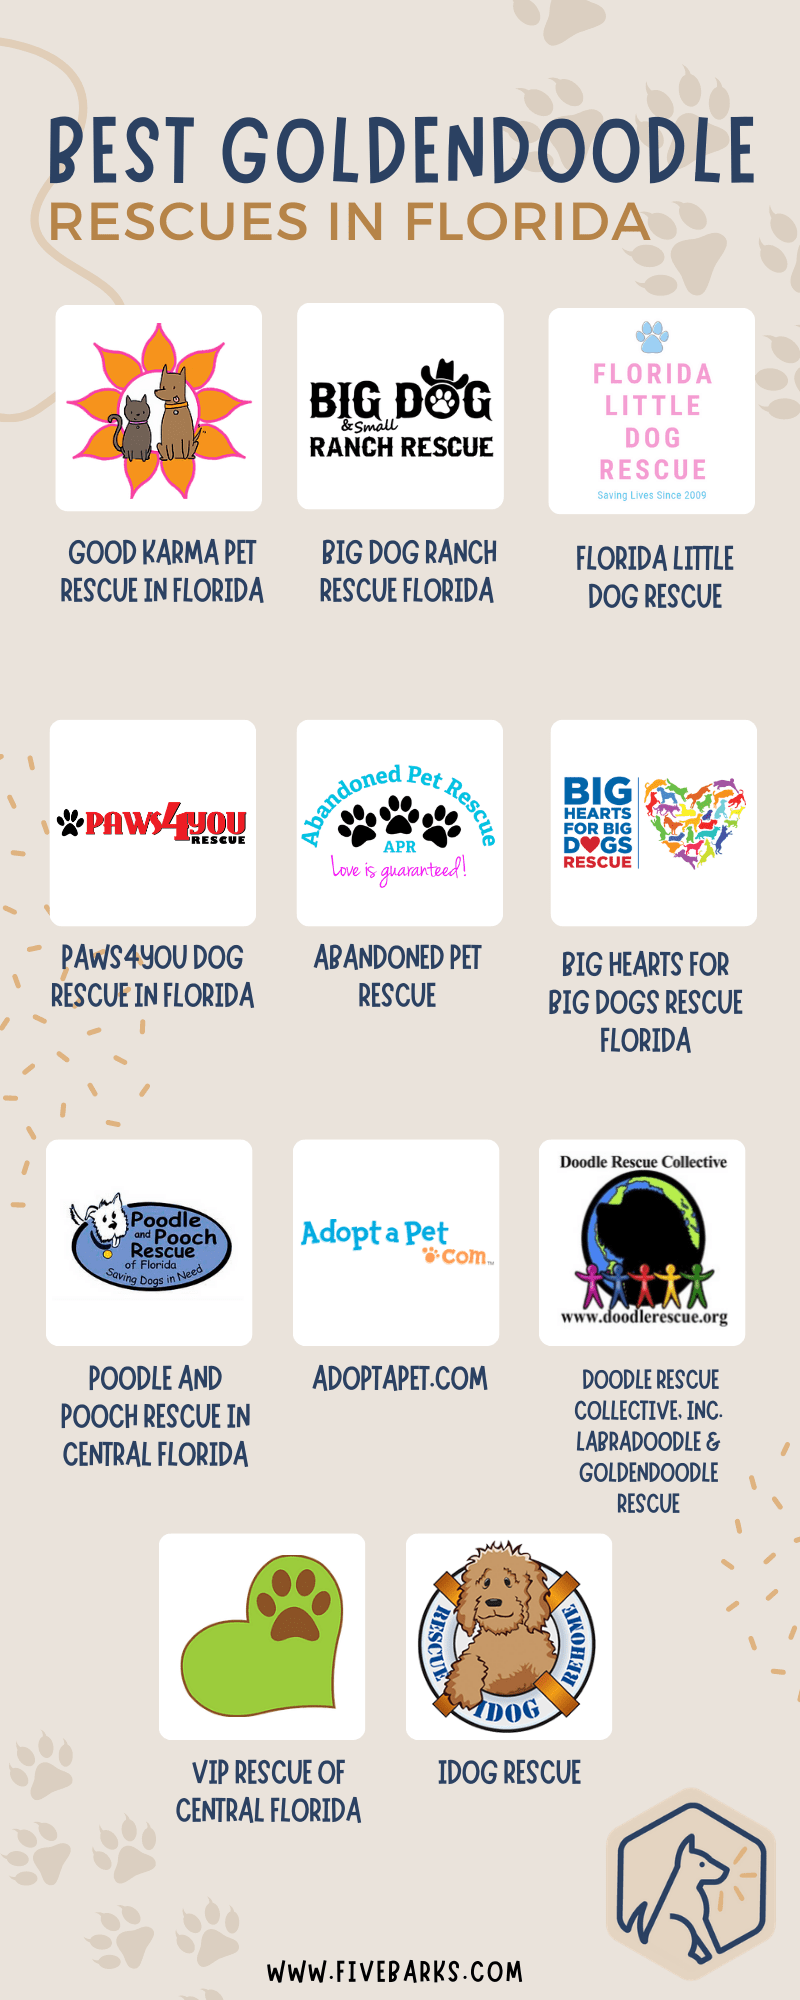 Best Goldendoodle Rescues in Florida - Infographic